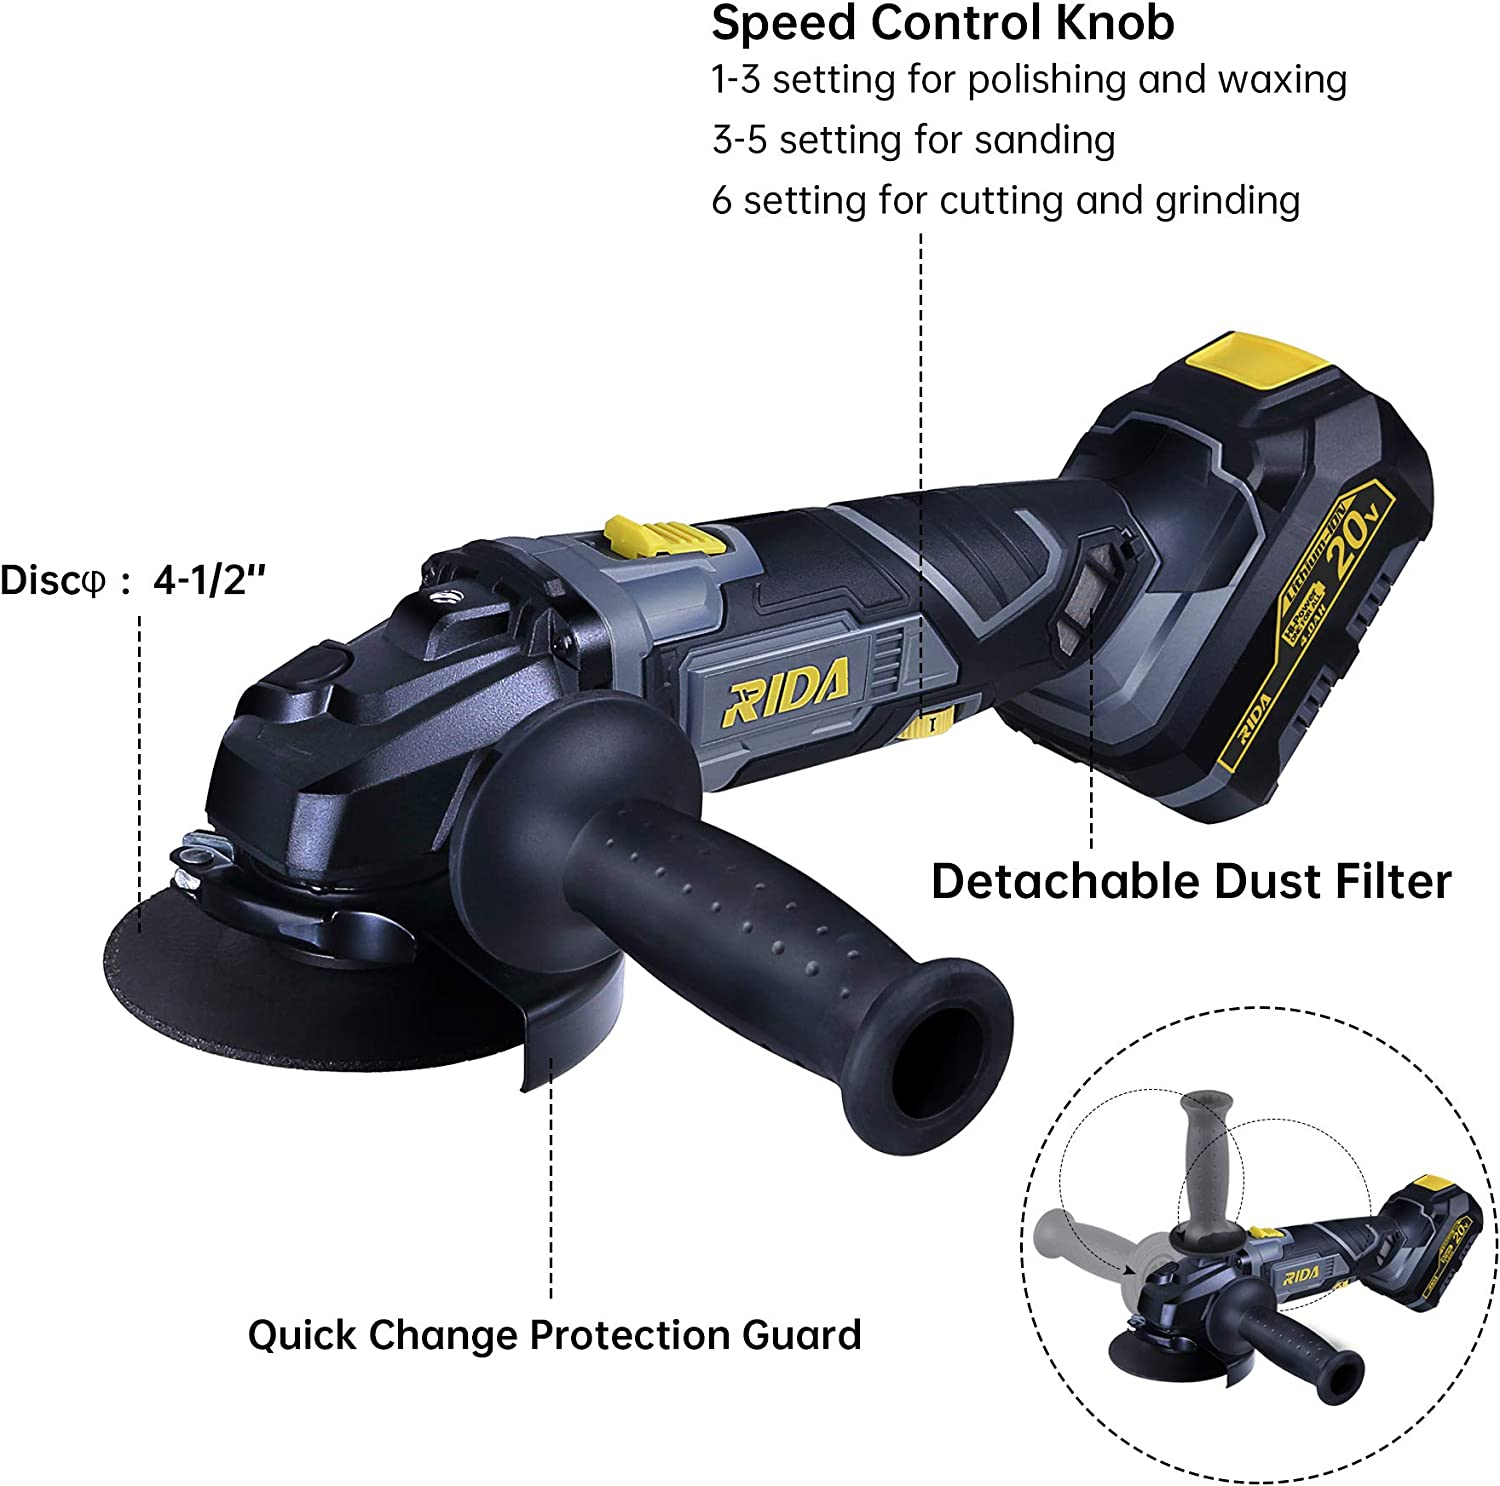 20V 4-1//2 Cut Off Tool 10000RPM Variable Speed RIDA Cordless Angle Grinder Dust Filter 23Pcs Accessories 4.0Ah Lithium-ion Battery and Fast Charger